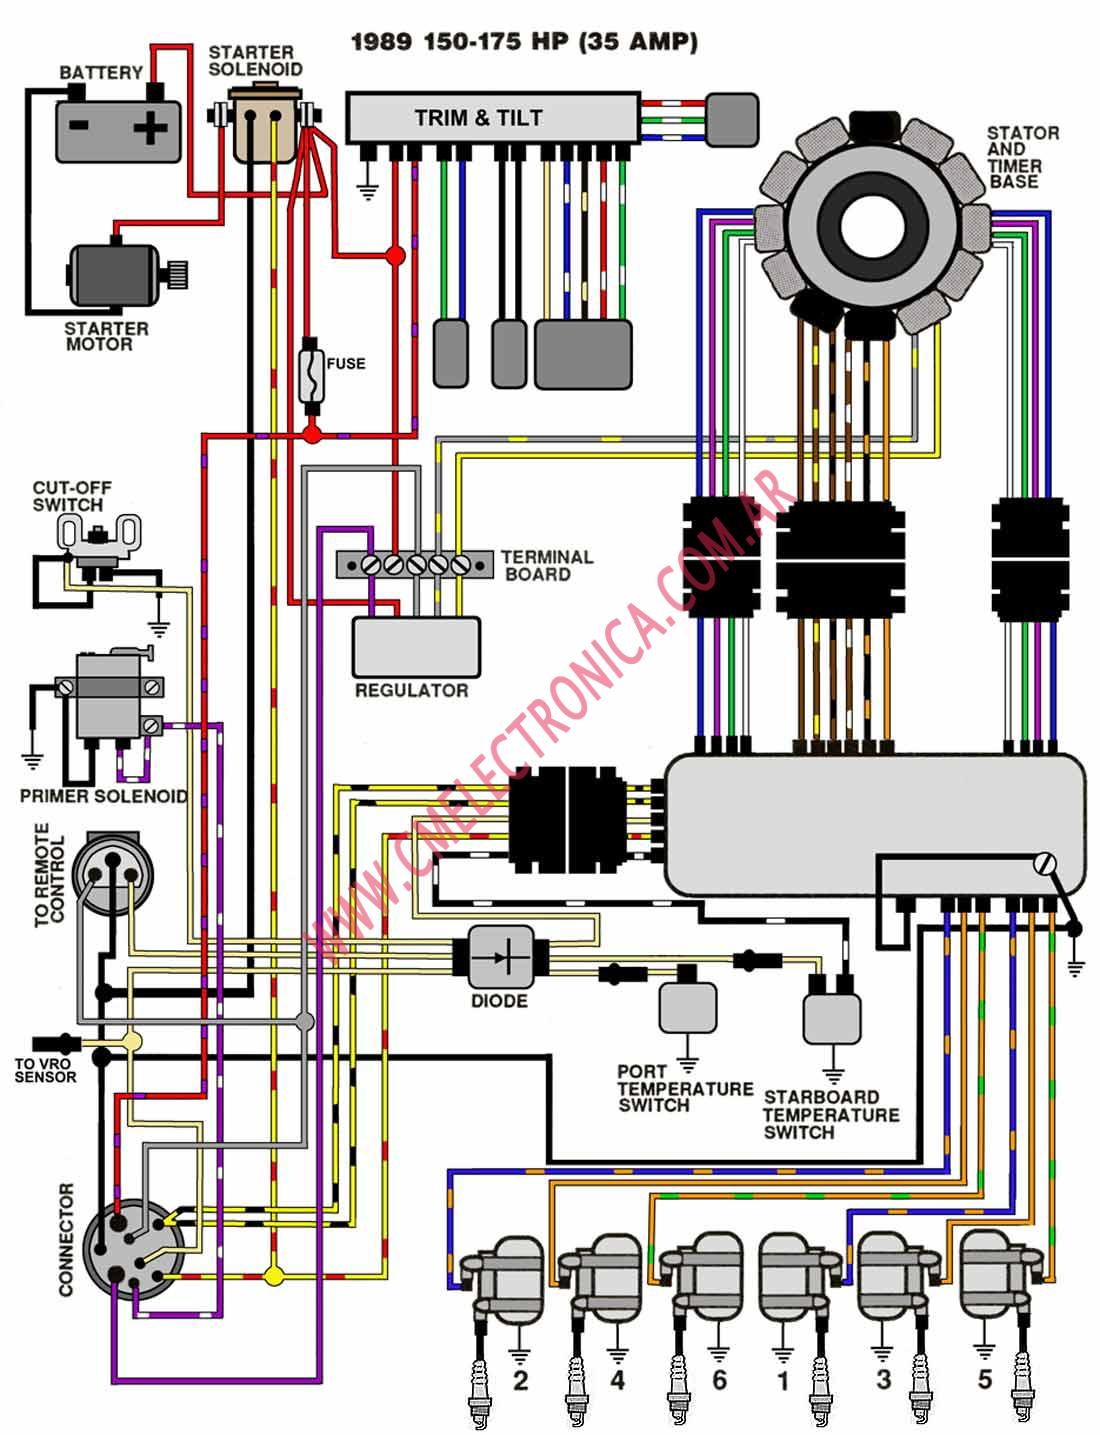 yamaha outboard motor wiring diagram images outboard wiring outboard wiring diagram on yamaha 40 hp 2 stroke motor contactor wiring diagram also evinrude outboard 60 hp johnson outboard wiring diagram